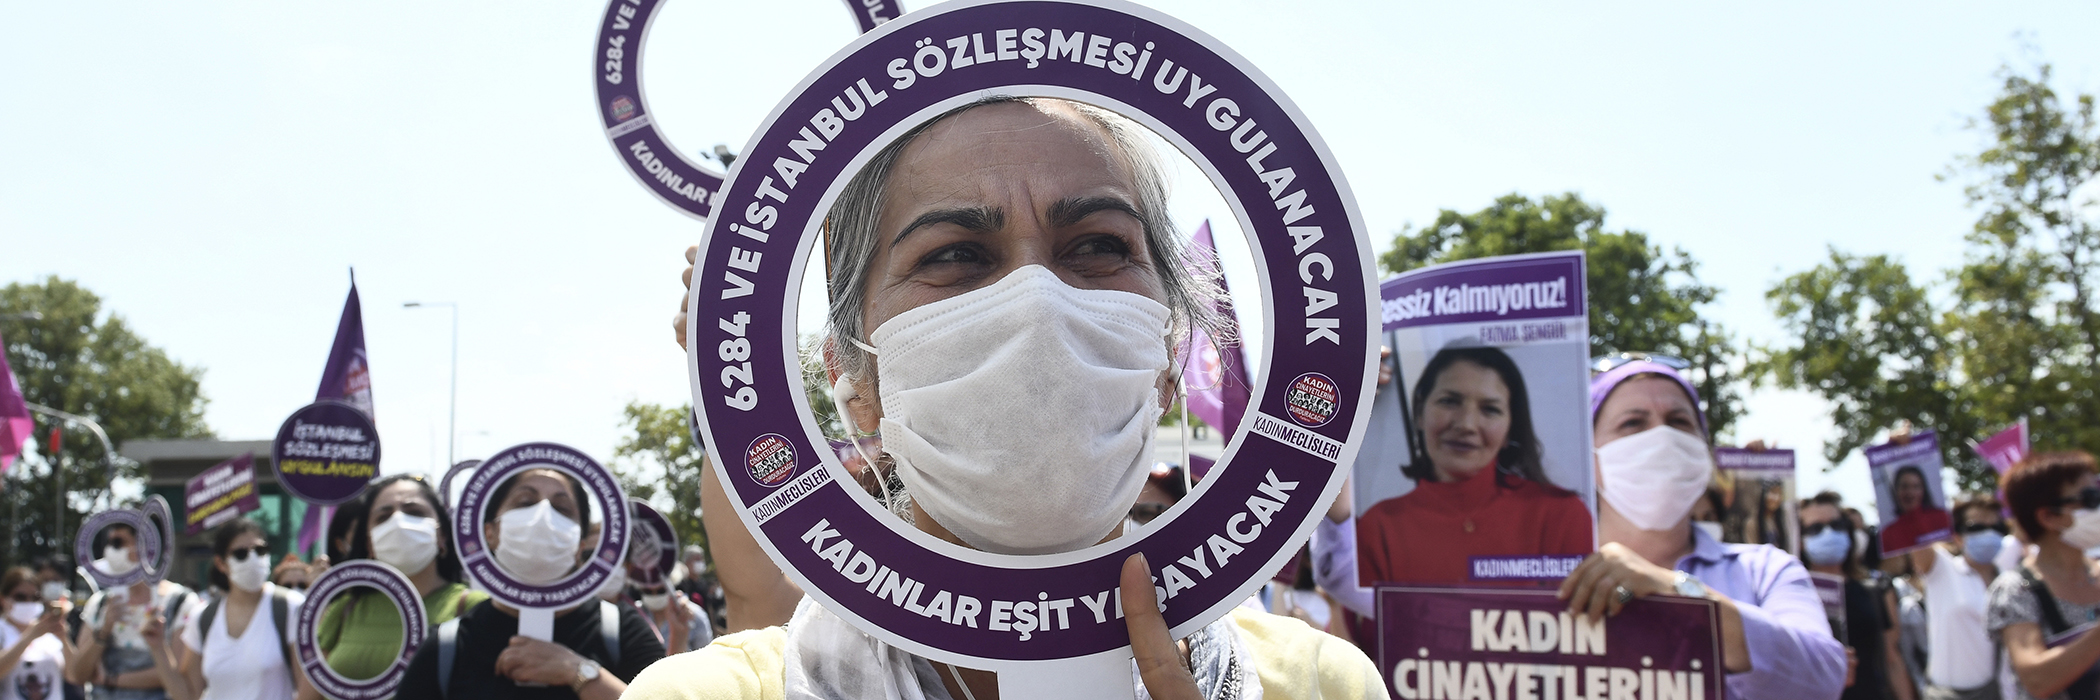 A Turkish Women's Rights Activist Explains the Importance of the 'Challenge Accepted' Campaign to Stop Femicide